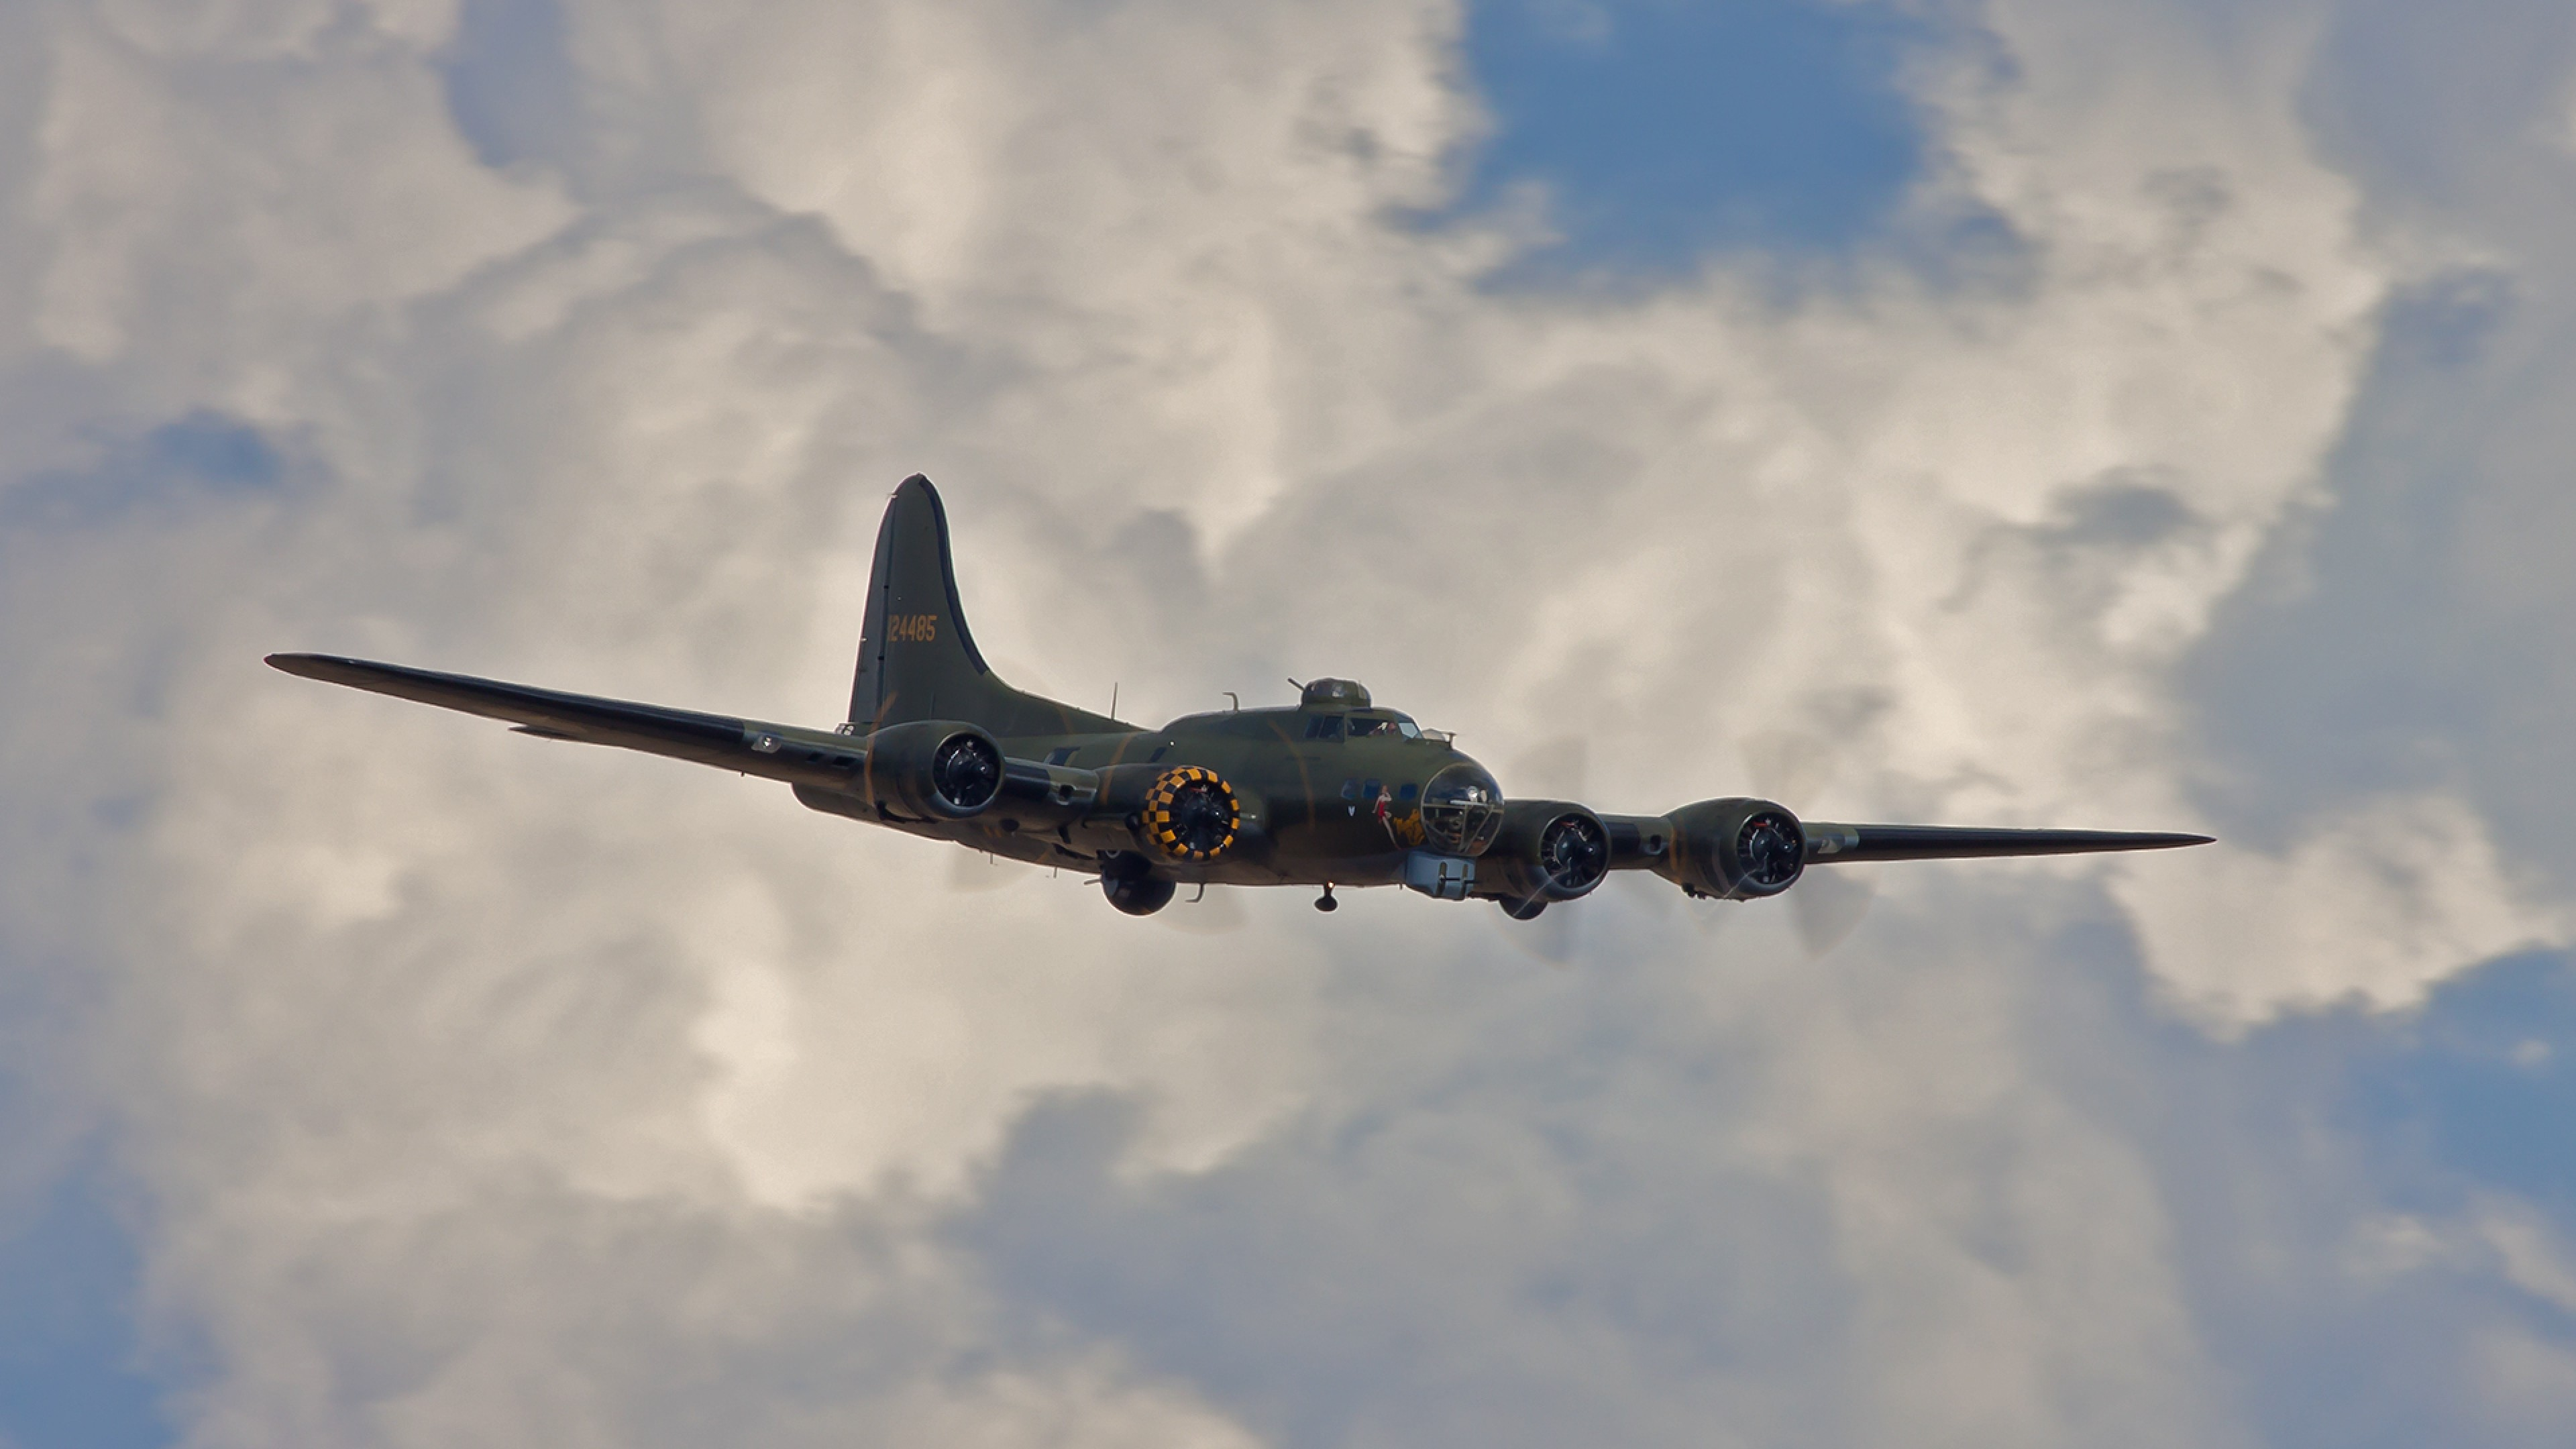 Wallpaper boeing b-17, flying fortress, bomber, sky, clouds